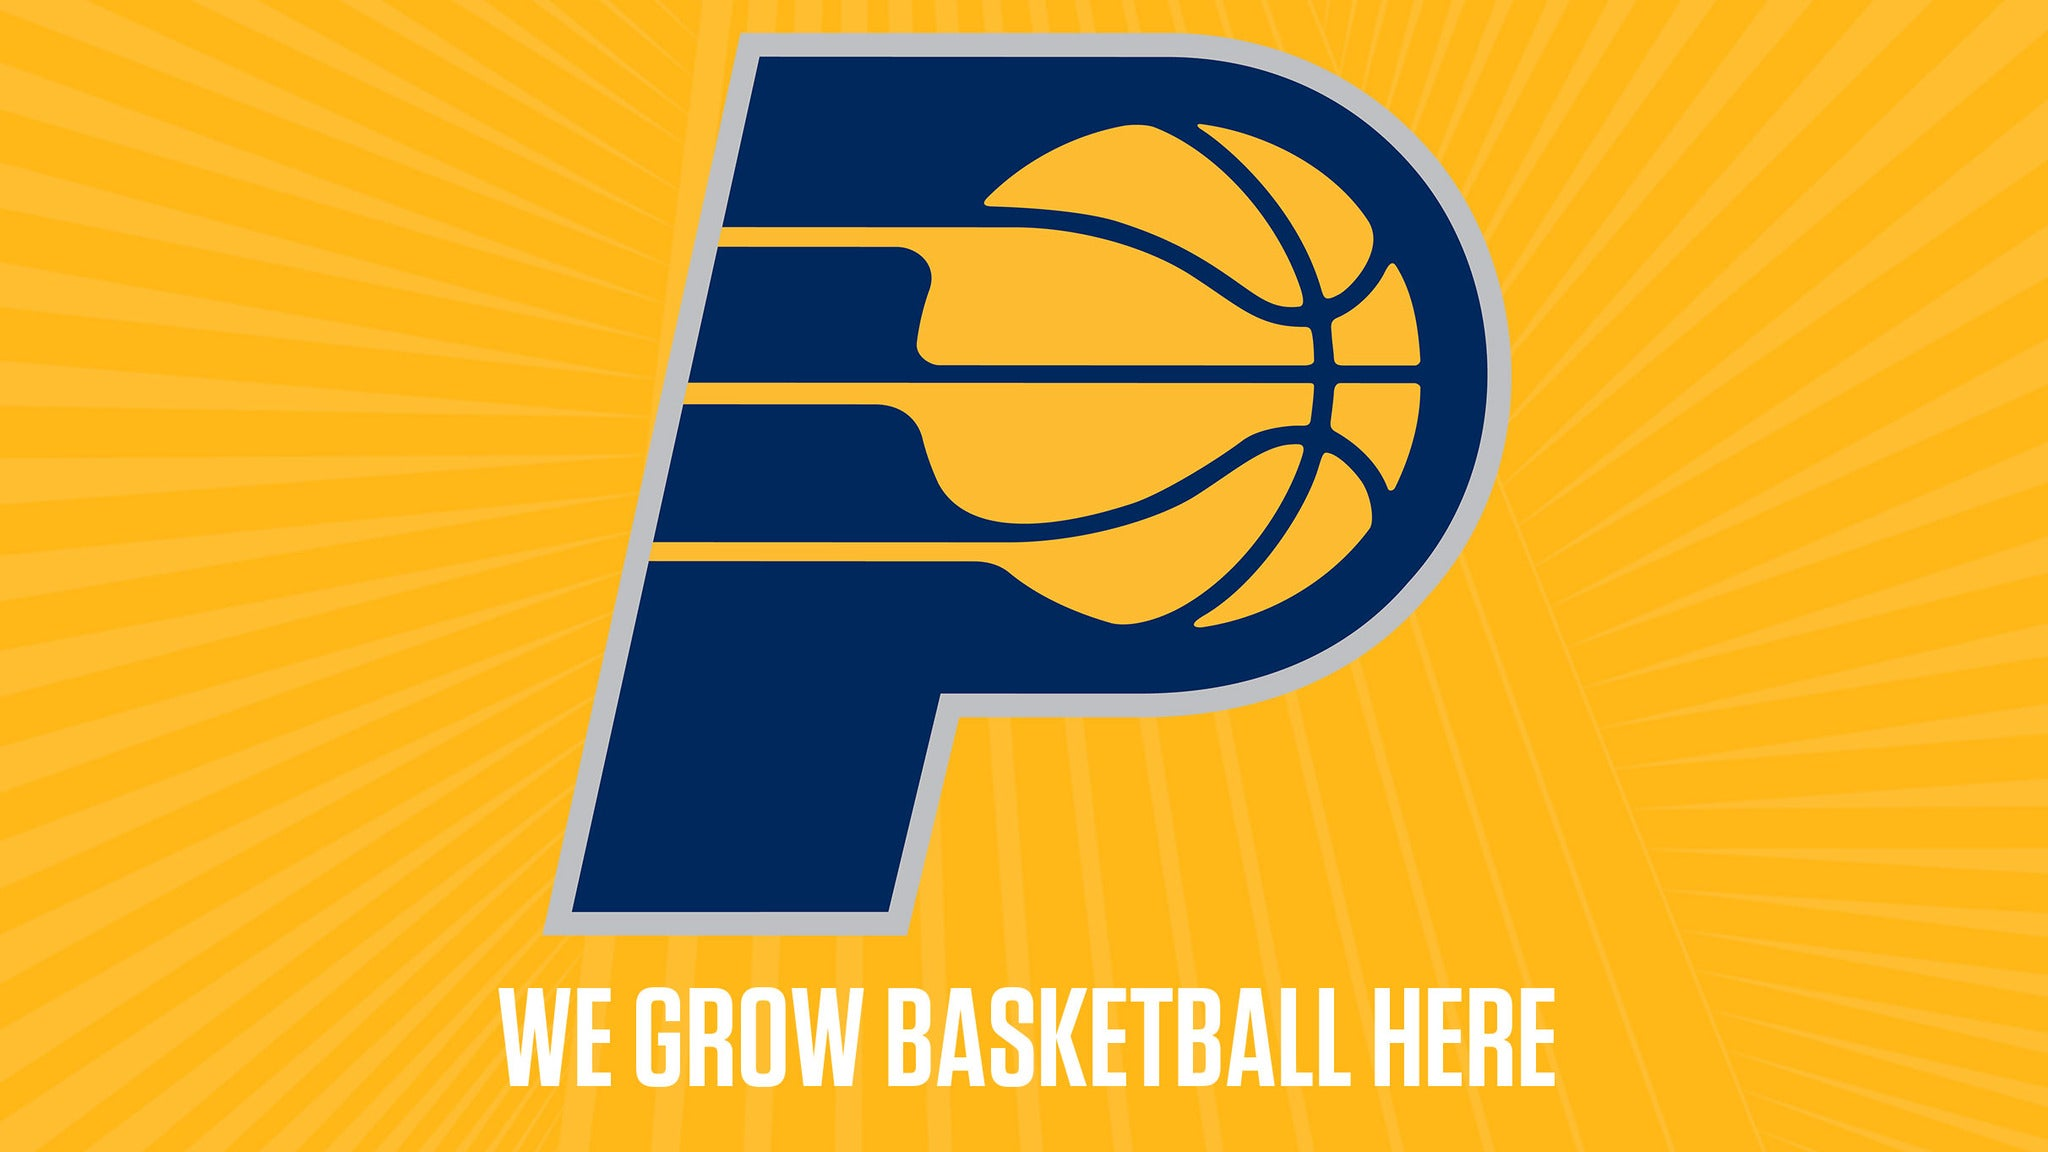 Indiana Pacers vs. Philadelphia 76ers